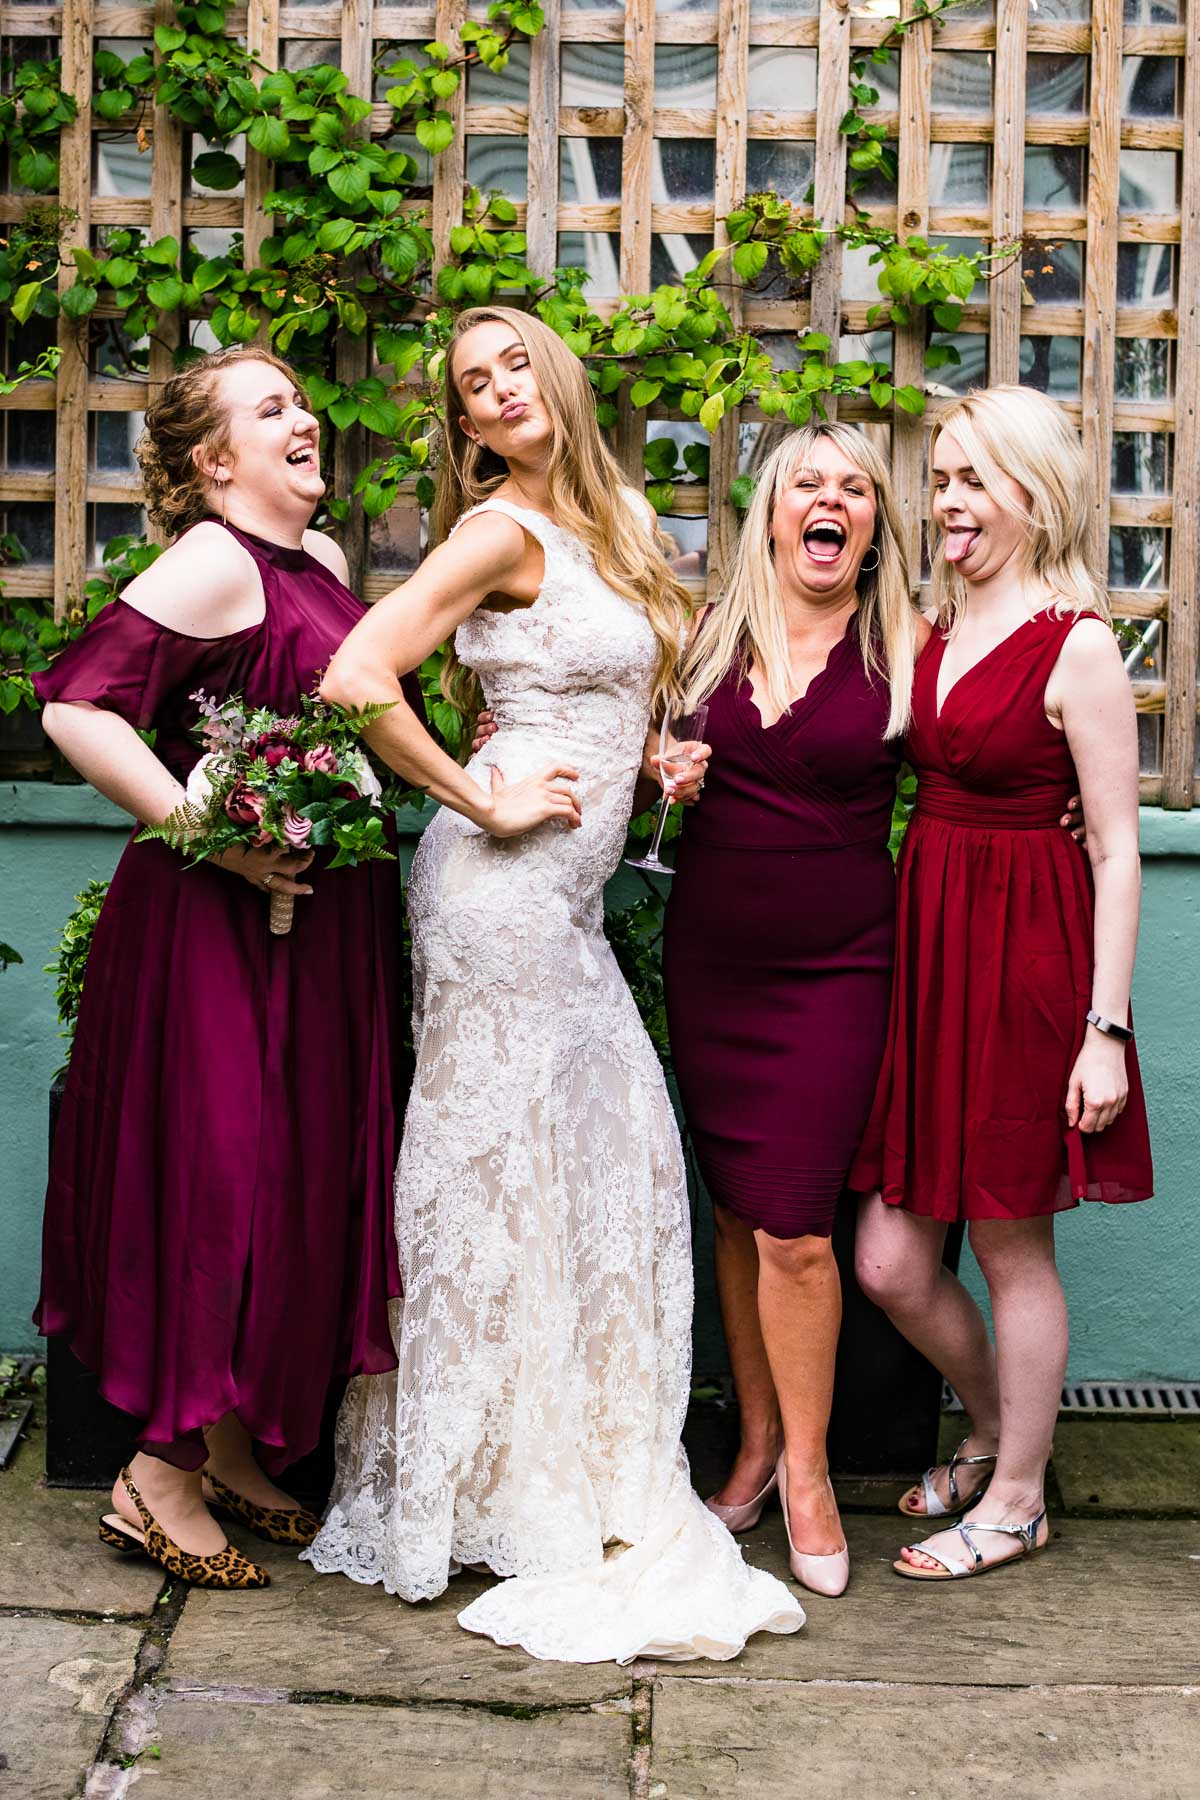 bride and bridesmaids laugh and pose together